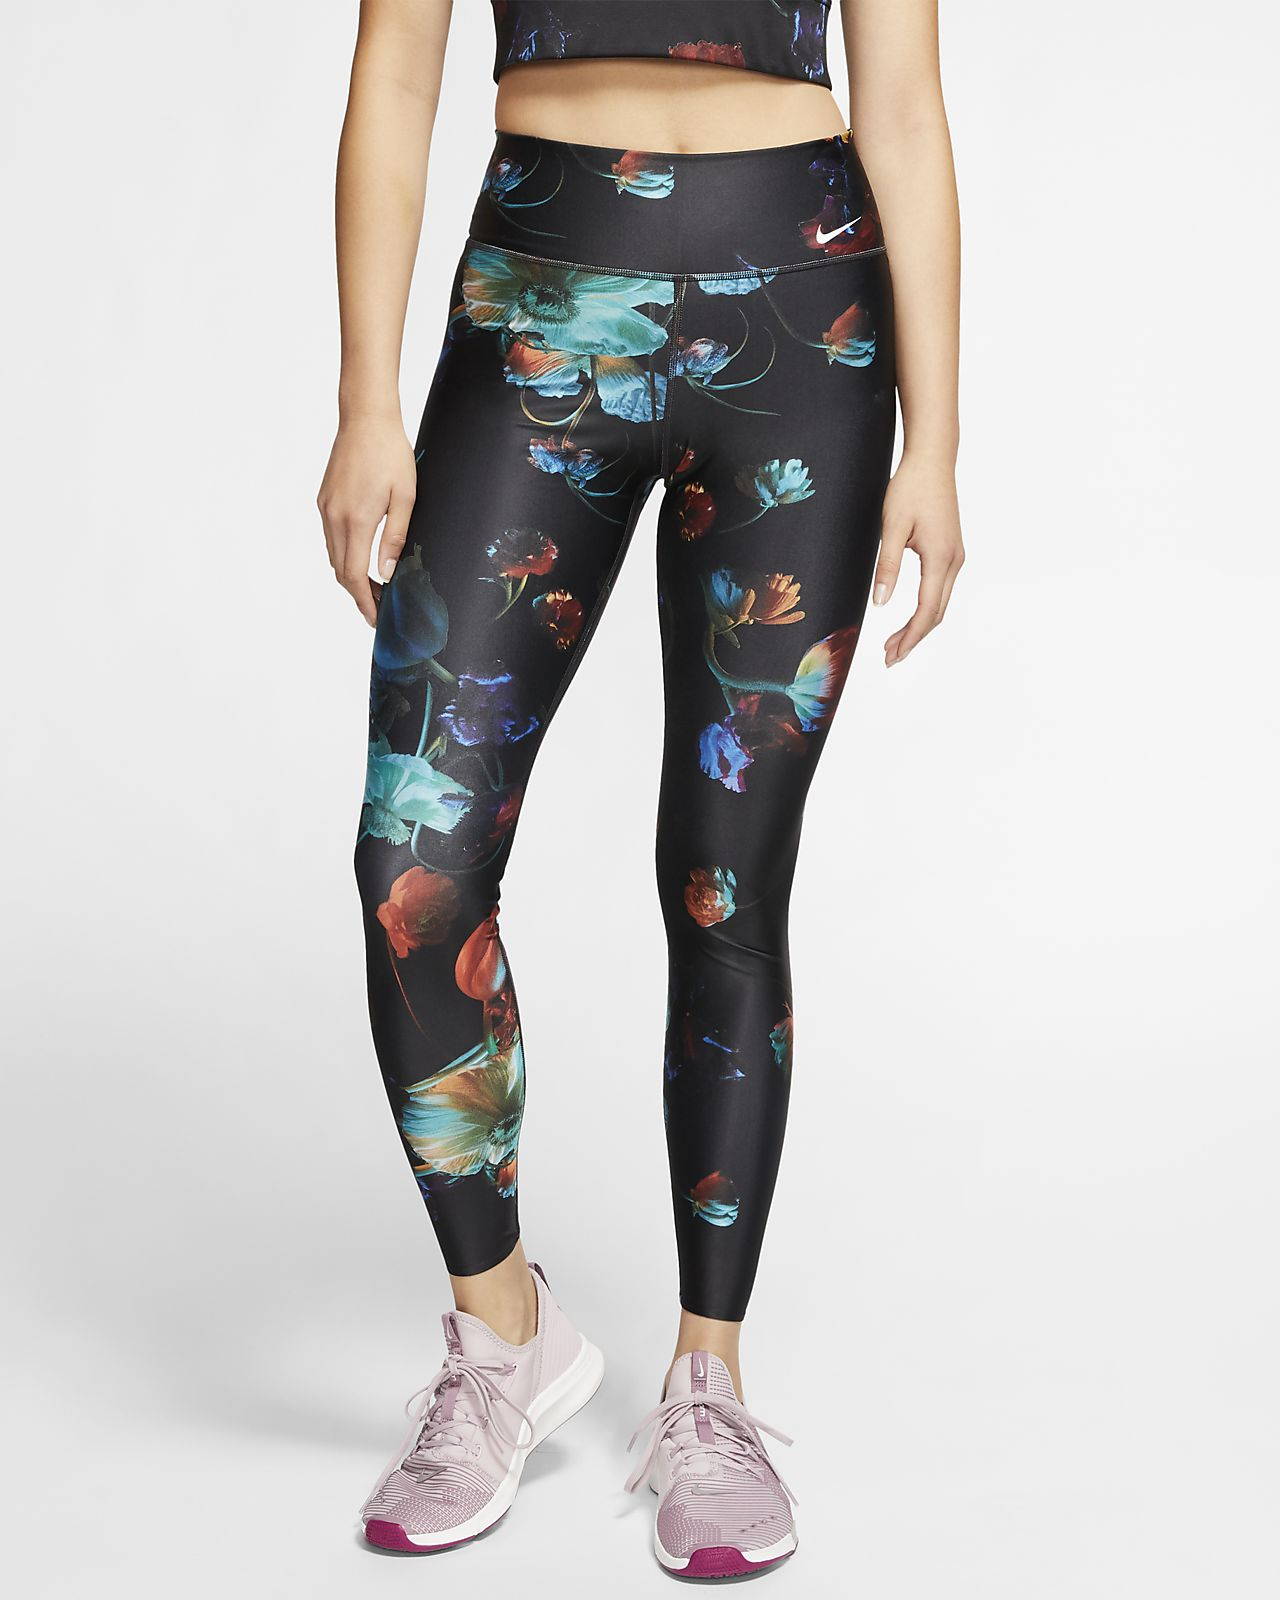 Nike Power Women's Floral Training Tights